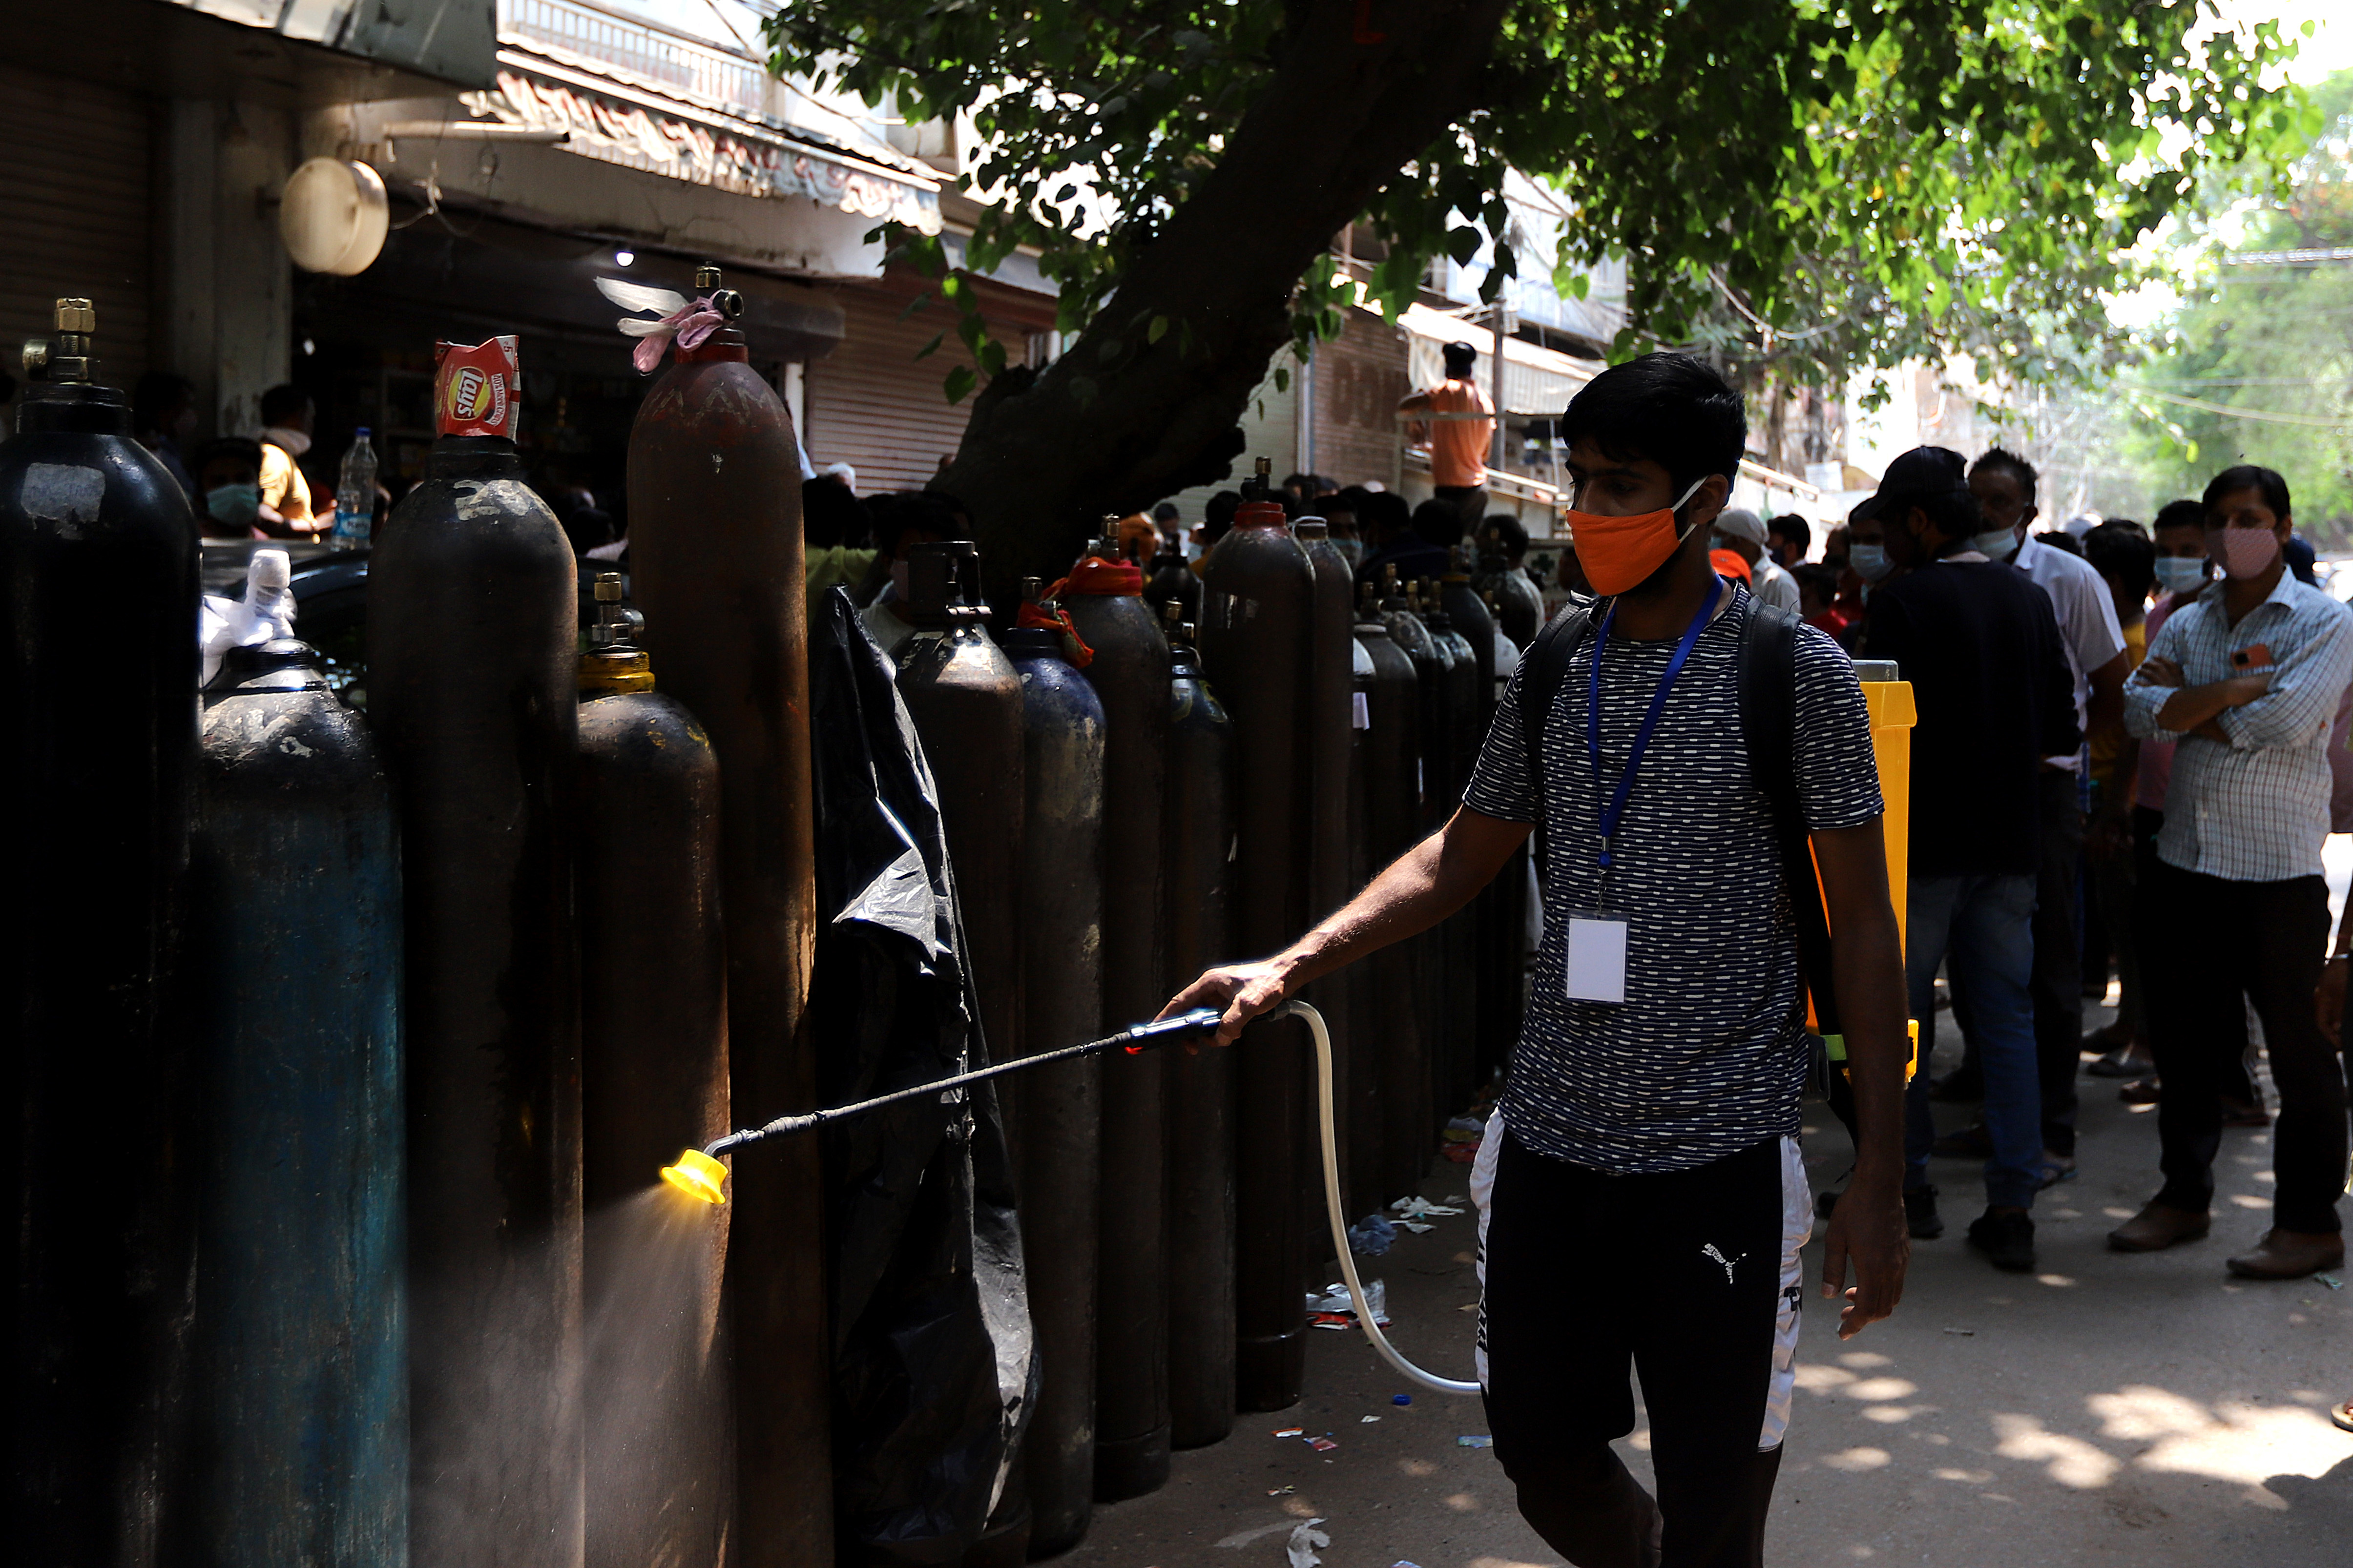 On 2 May 2021, Javed Alam, a 34-year-old student of UN volunteers, sanitize oxygen cylinders outside a refilling centre in New Delhi, India.